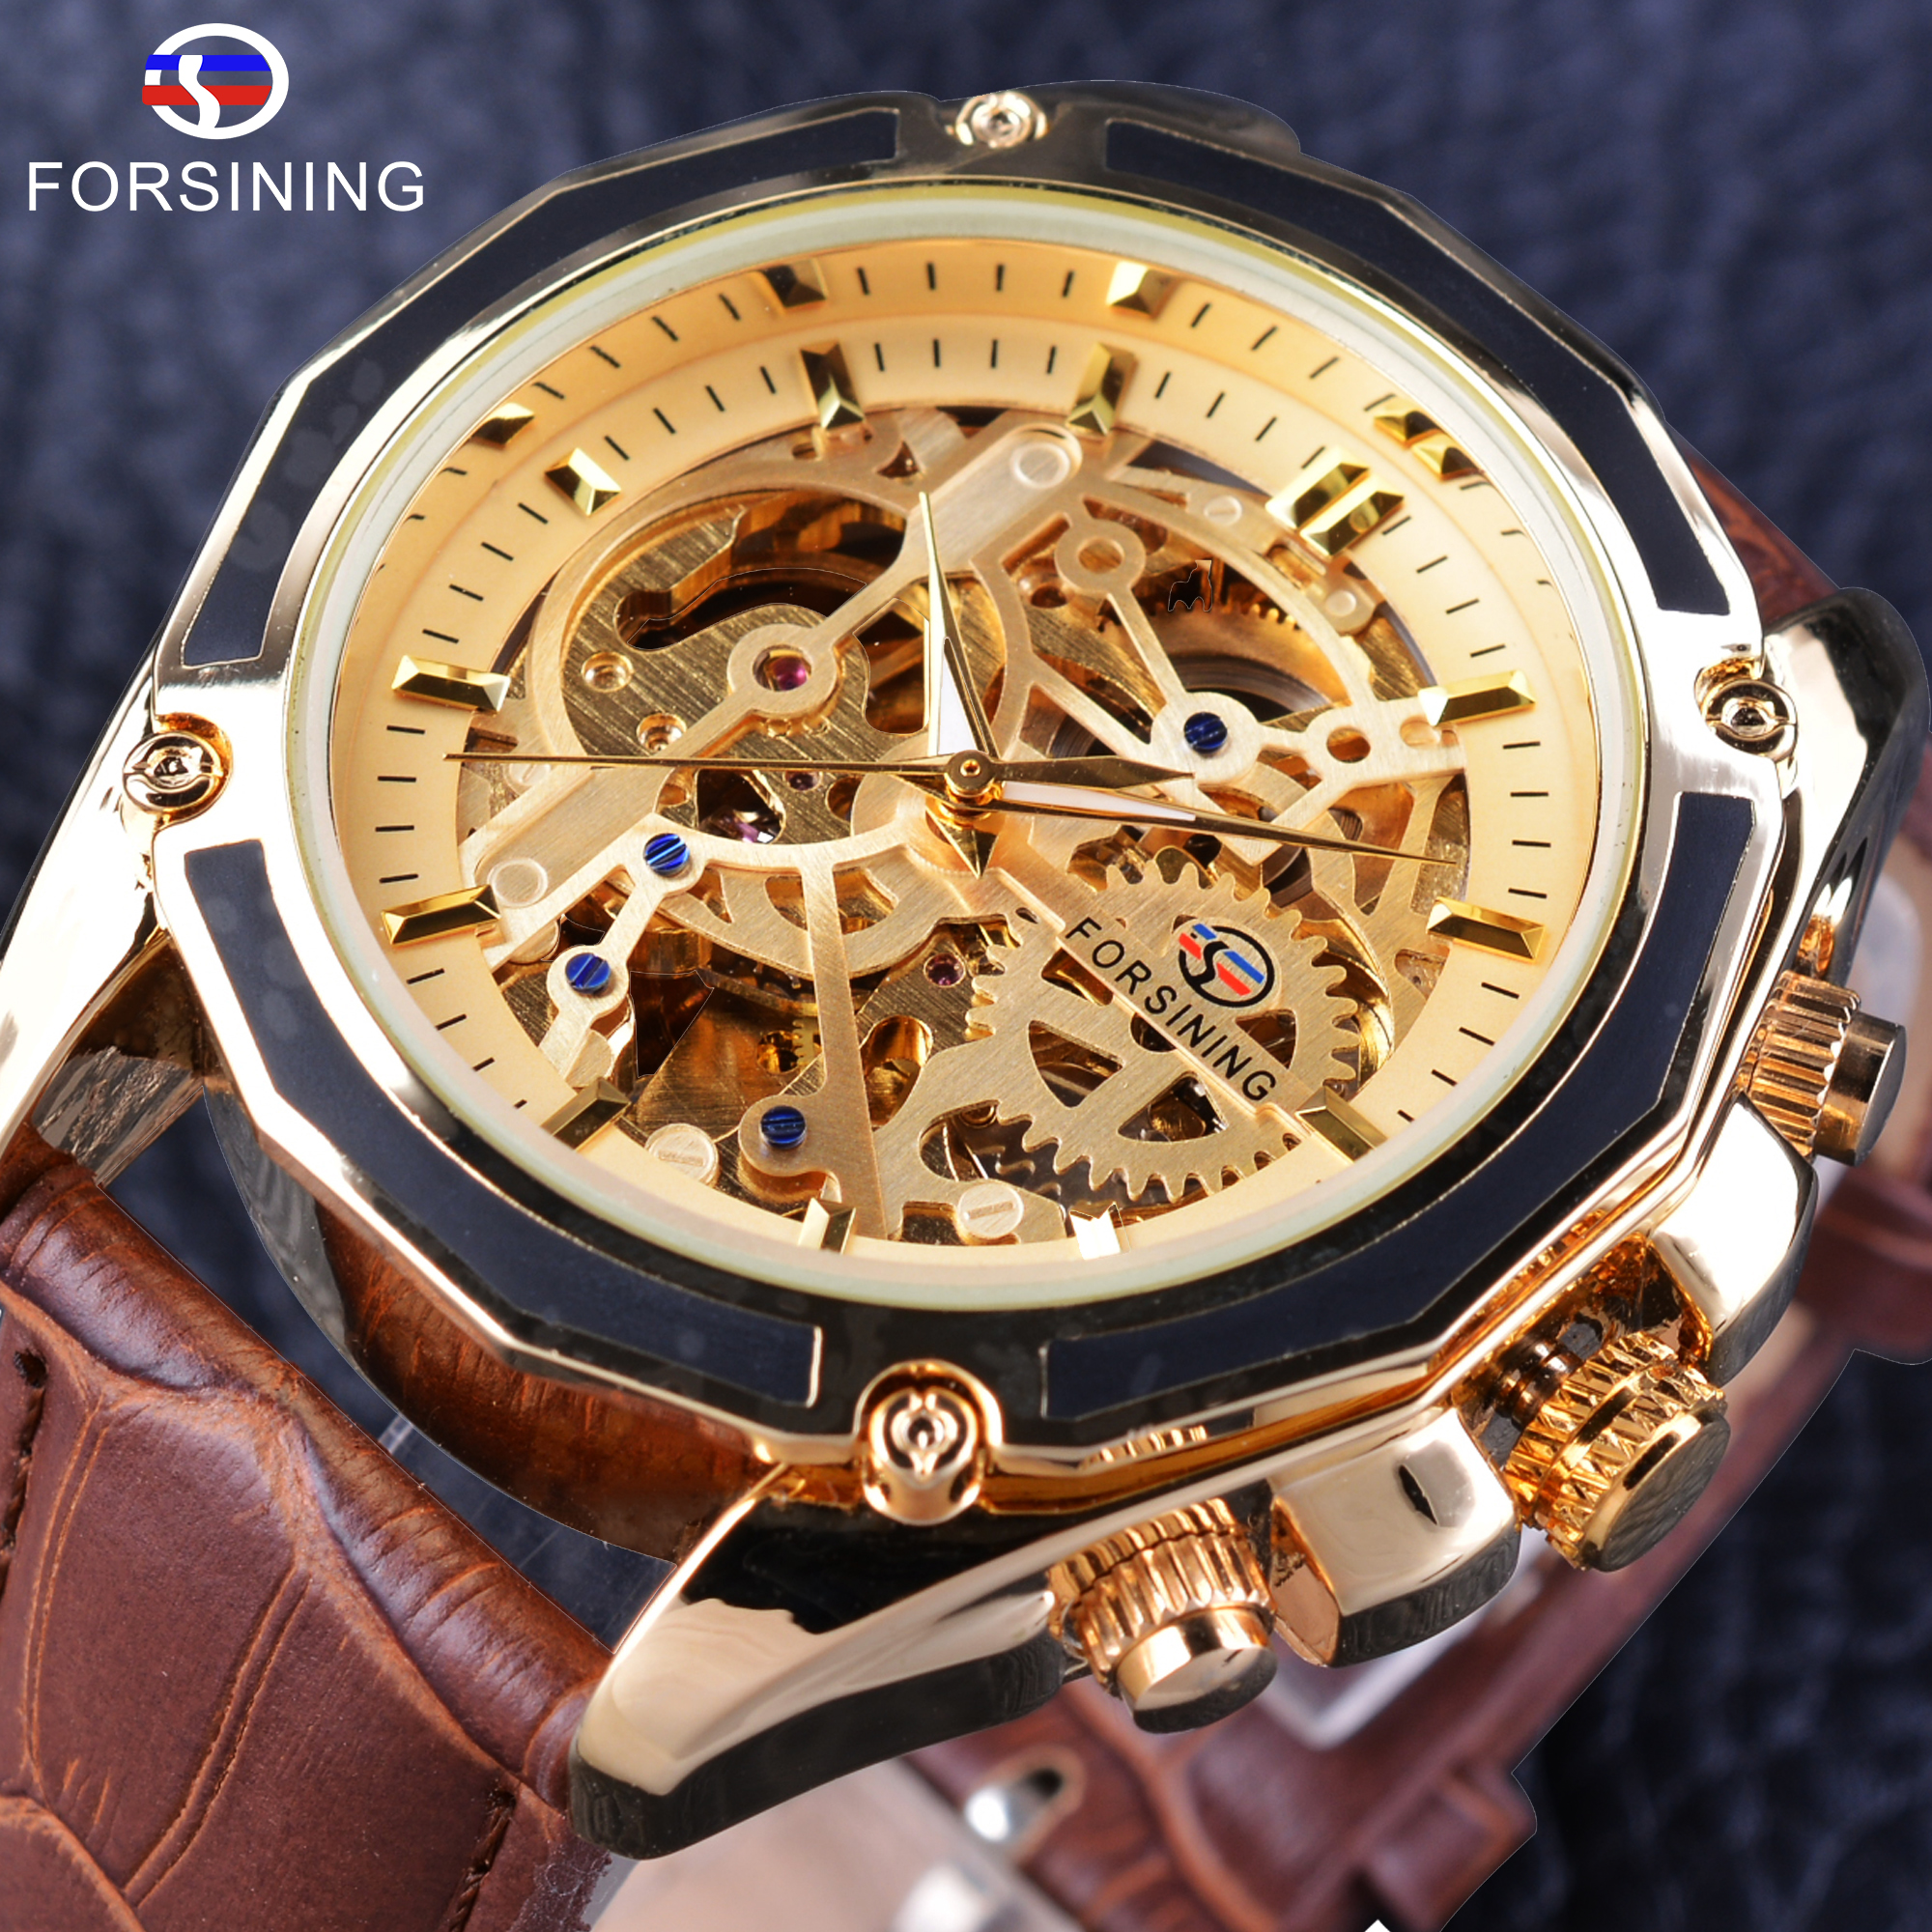 Forsining Transparent Luxury Gear Steampunk Brown Äkta Läder Bälte Golden Movement Inside Självgående Automatiska Armbandsur